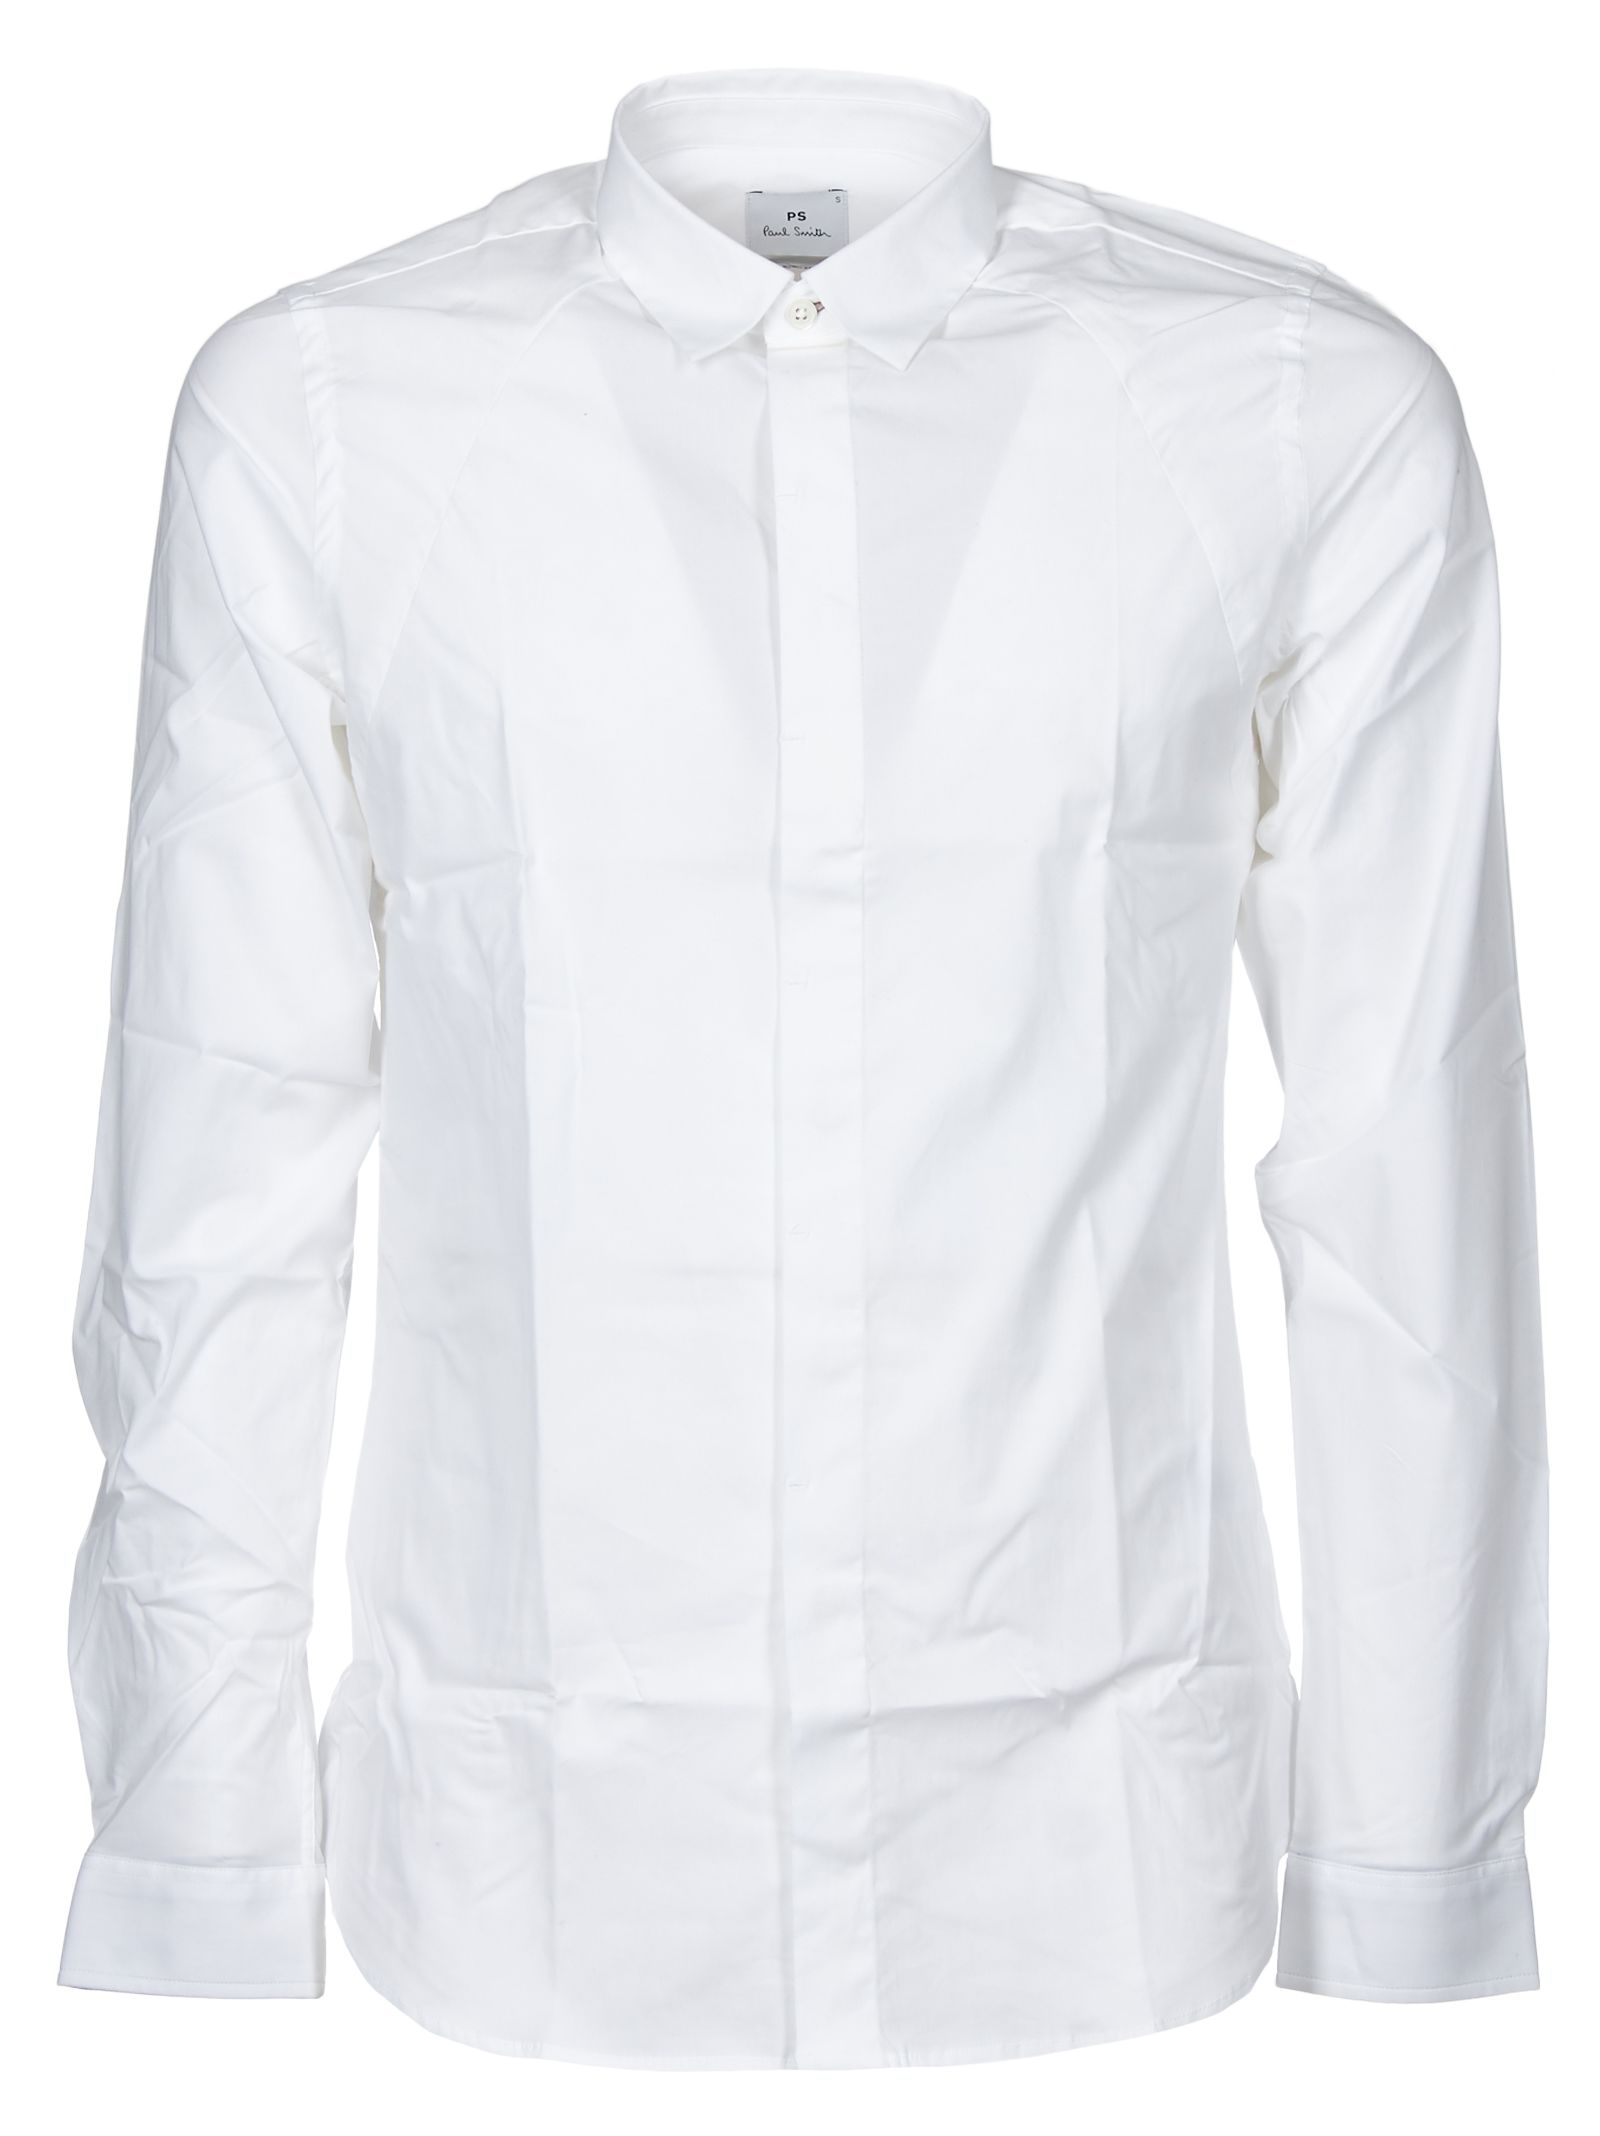 Paul Smith Button-up Shirt